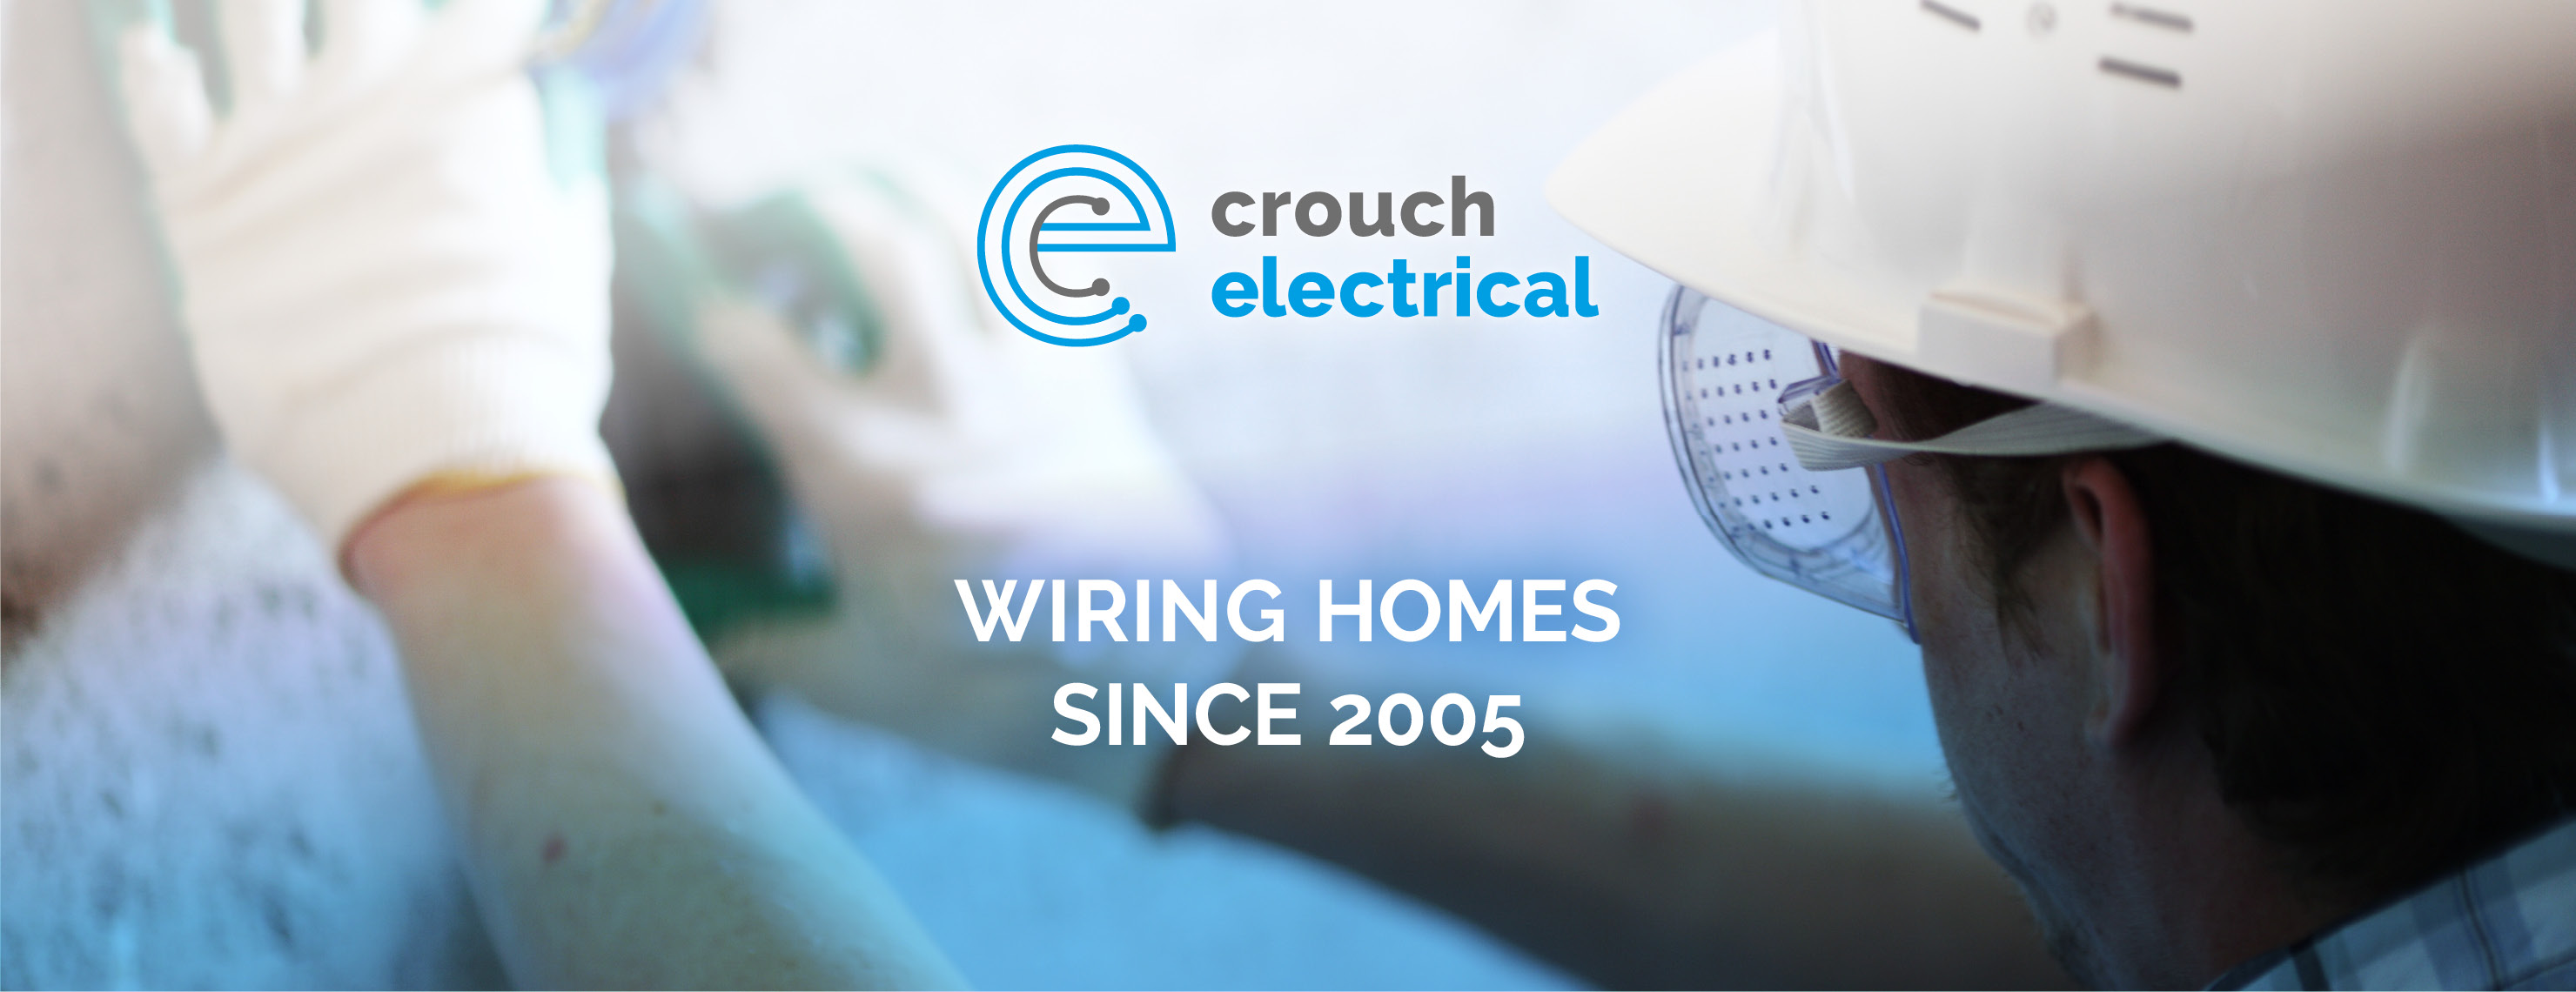 Wiring Homes Since 2005